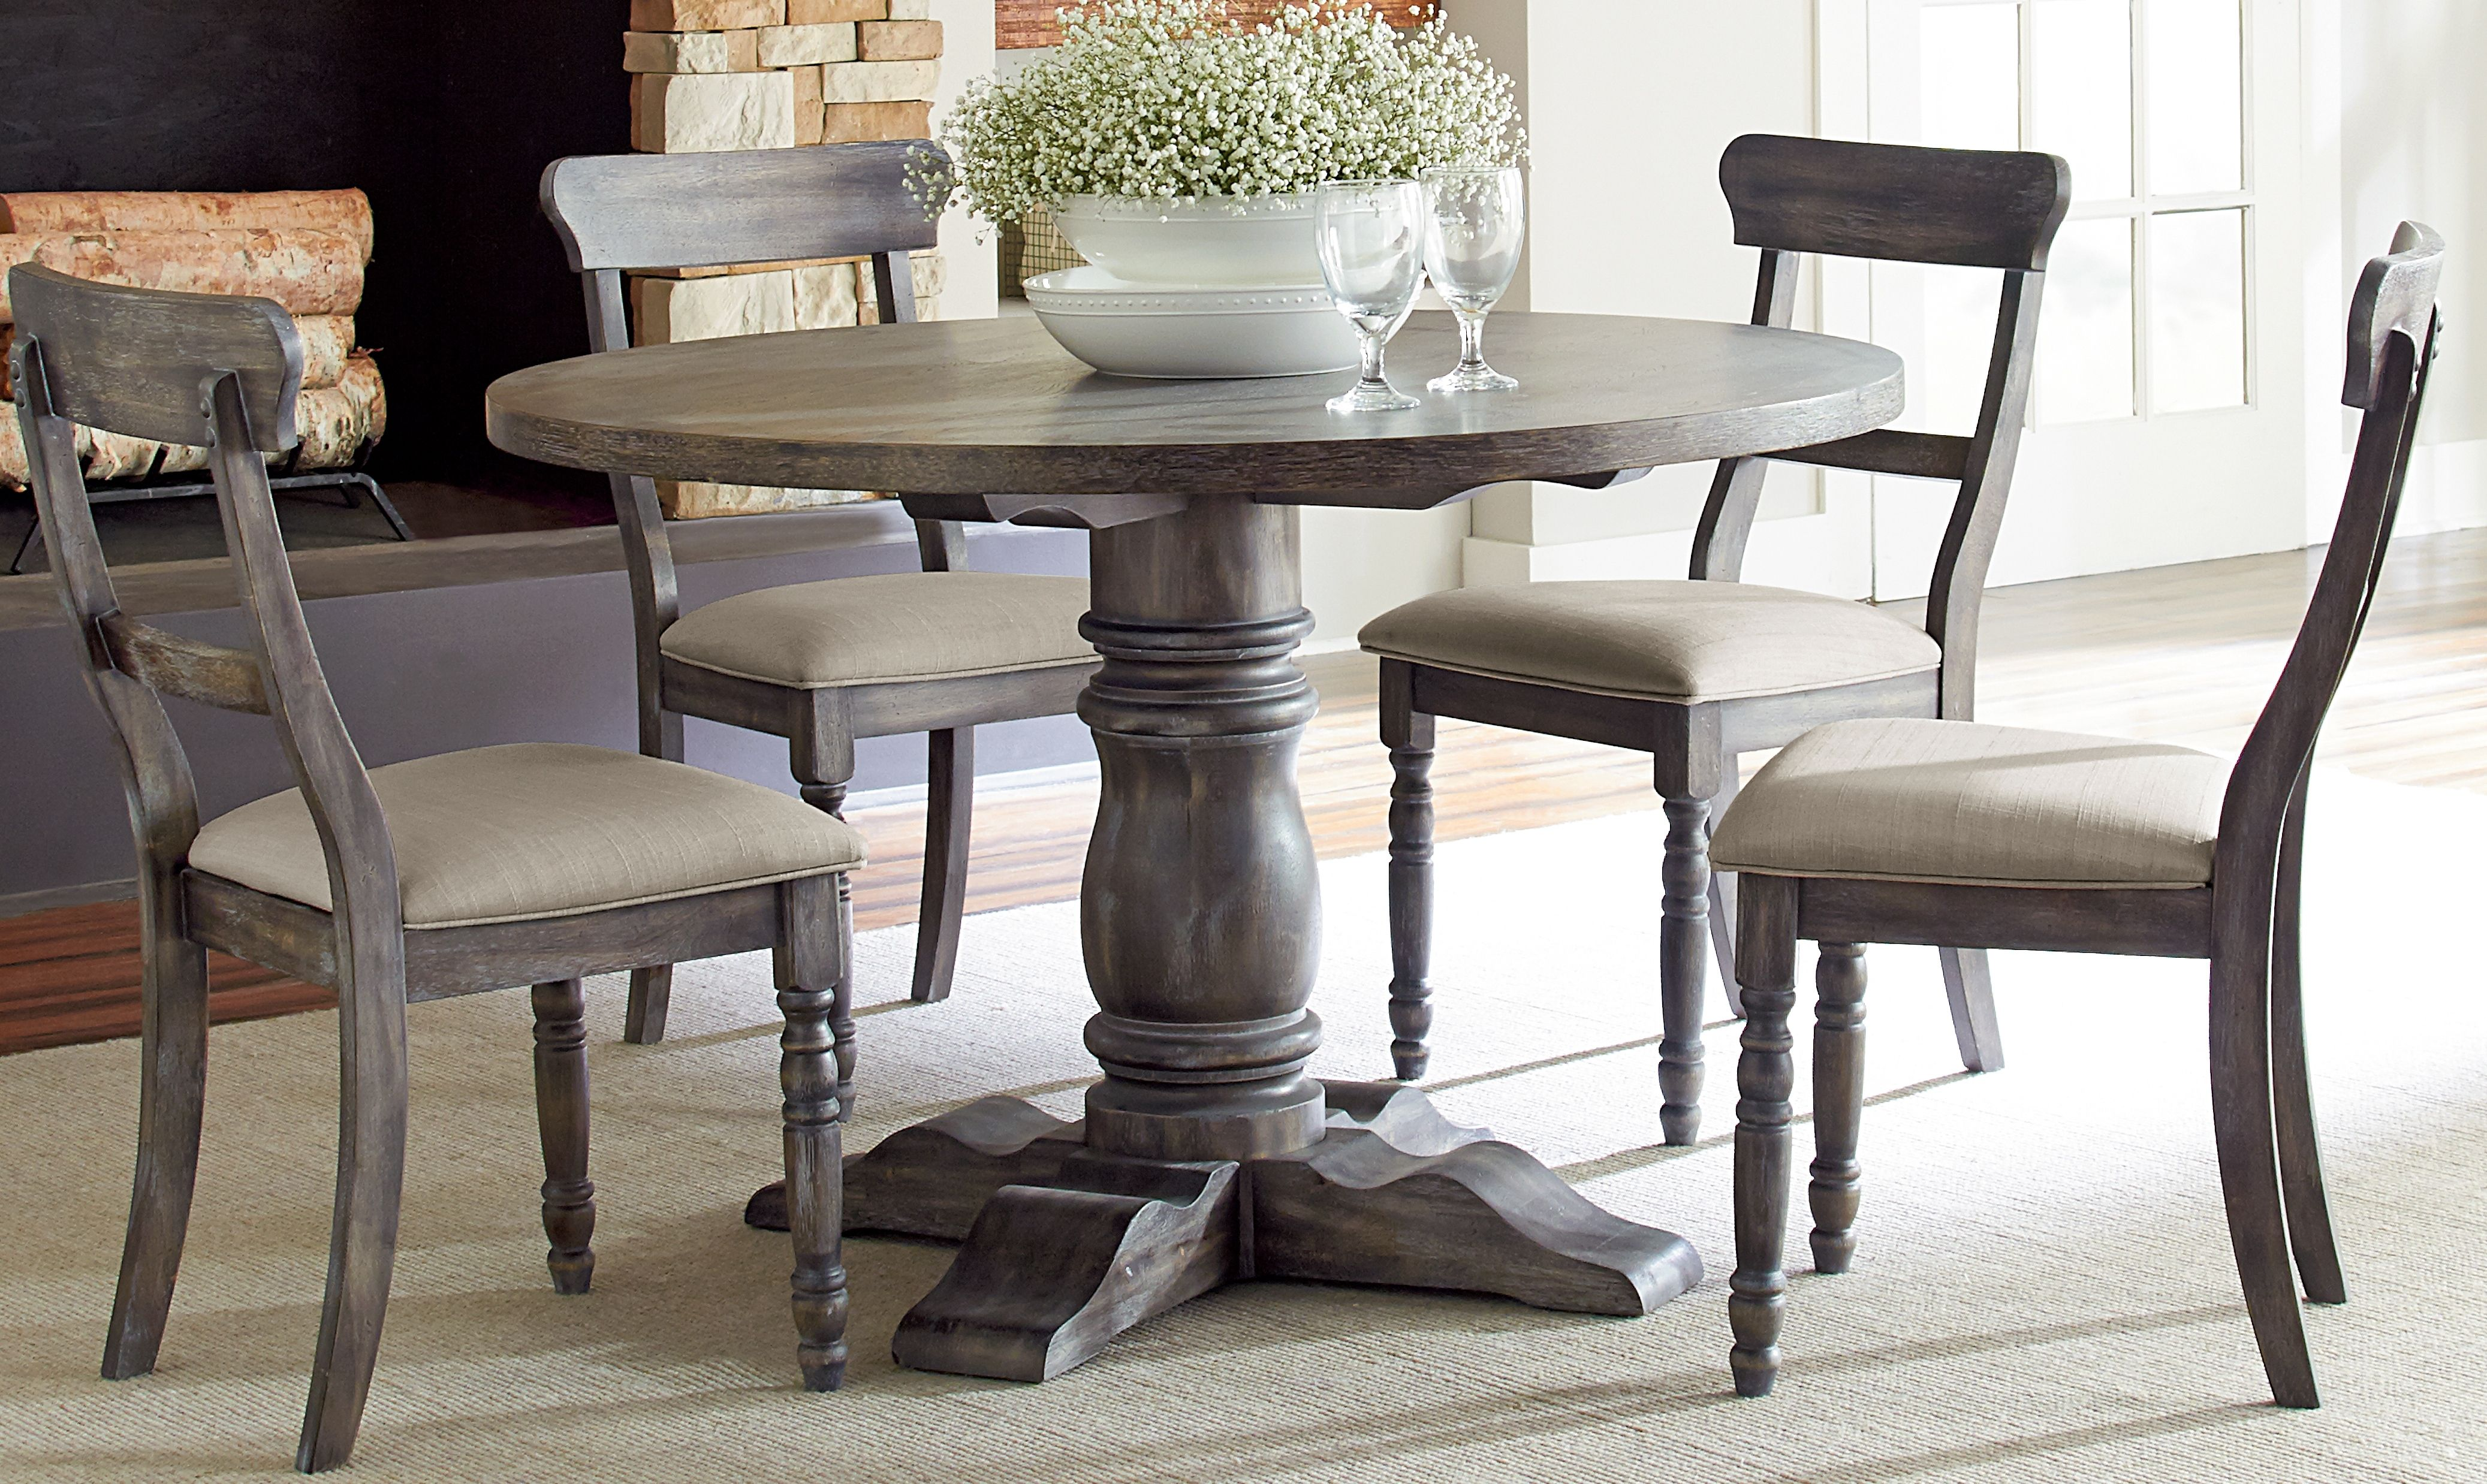 Round country kitchen table and chairs http round country kitchen table and chairs watchthetrailerfo